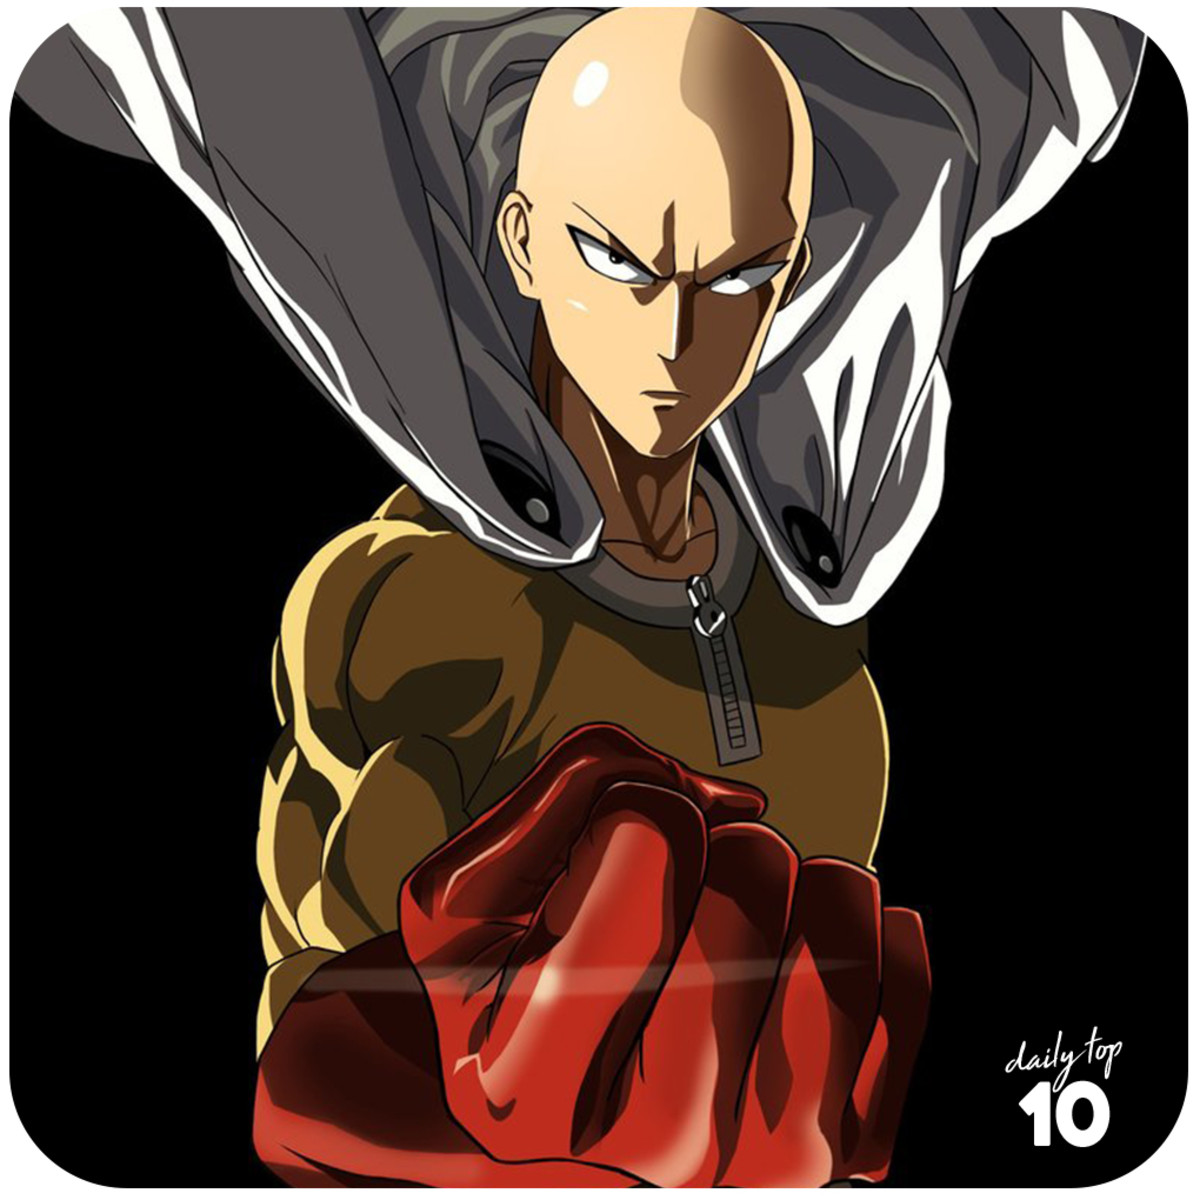 Saitama of One Punch Man